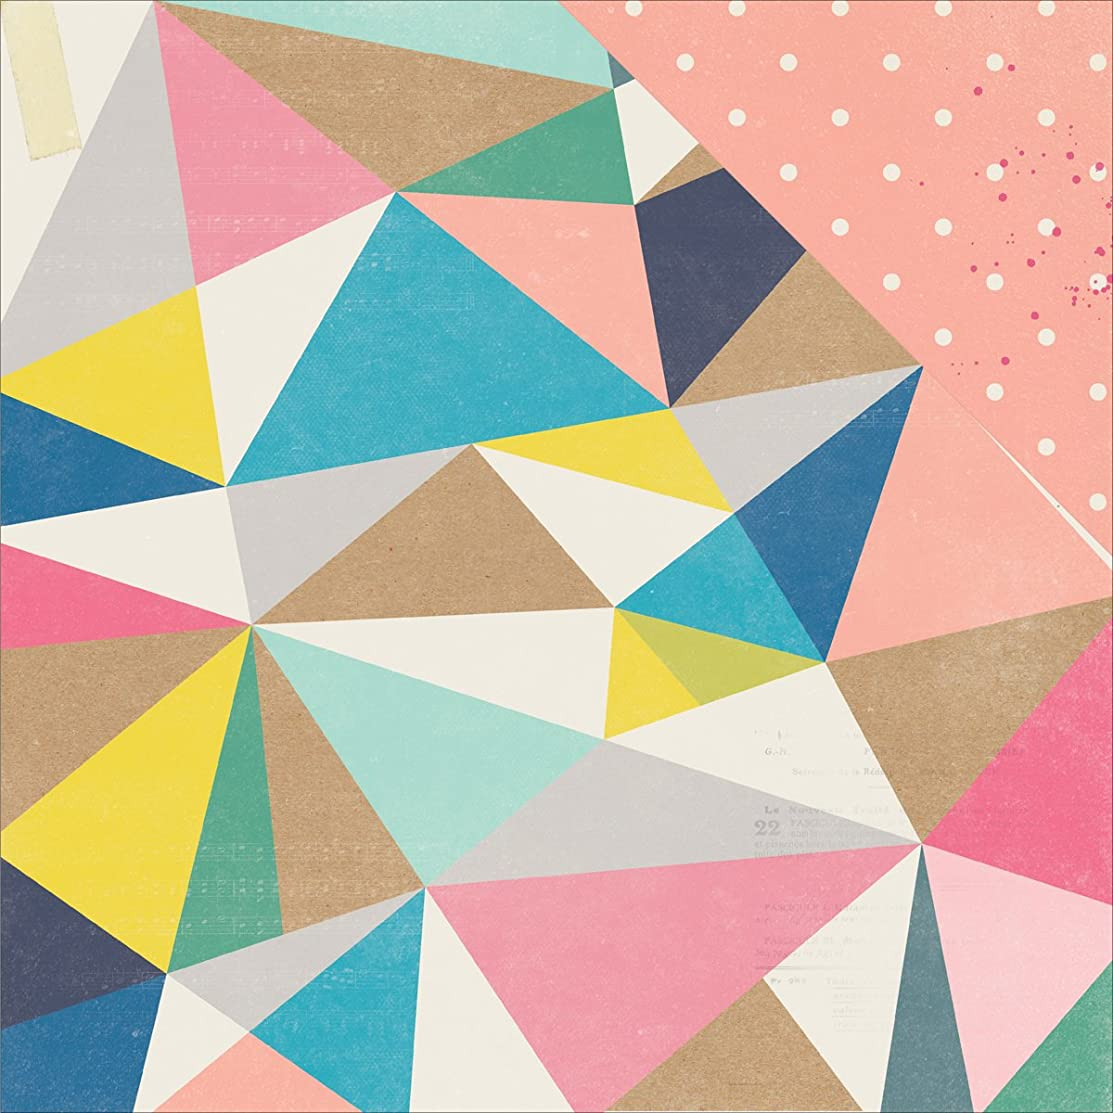 American Crafts 680305 Maggie Holmes Shine Double-Sided Cardstock (25 Sheets Per Pack), 12